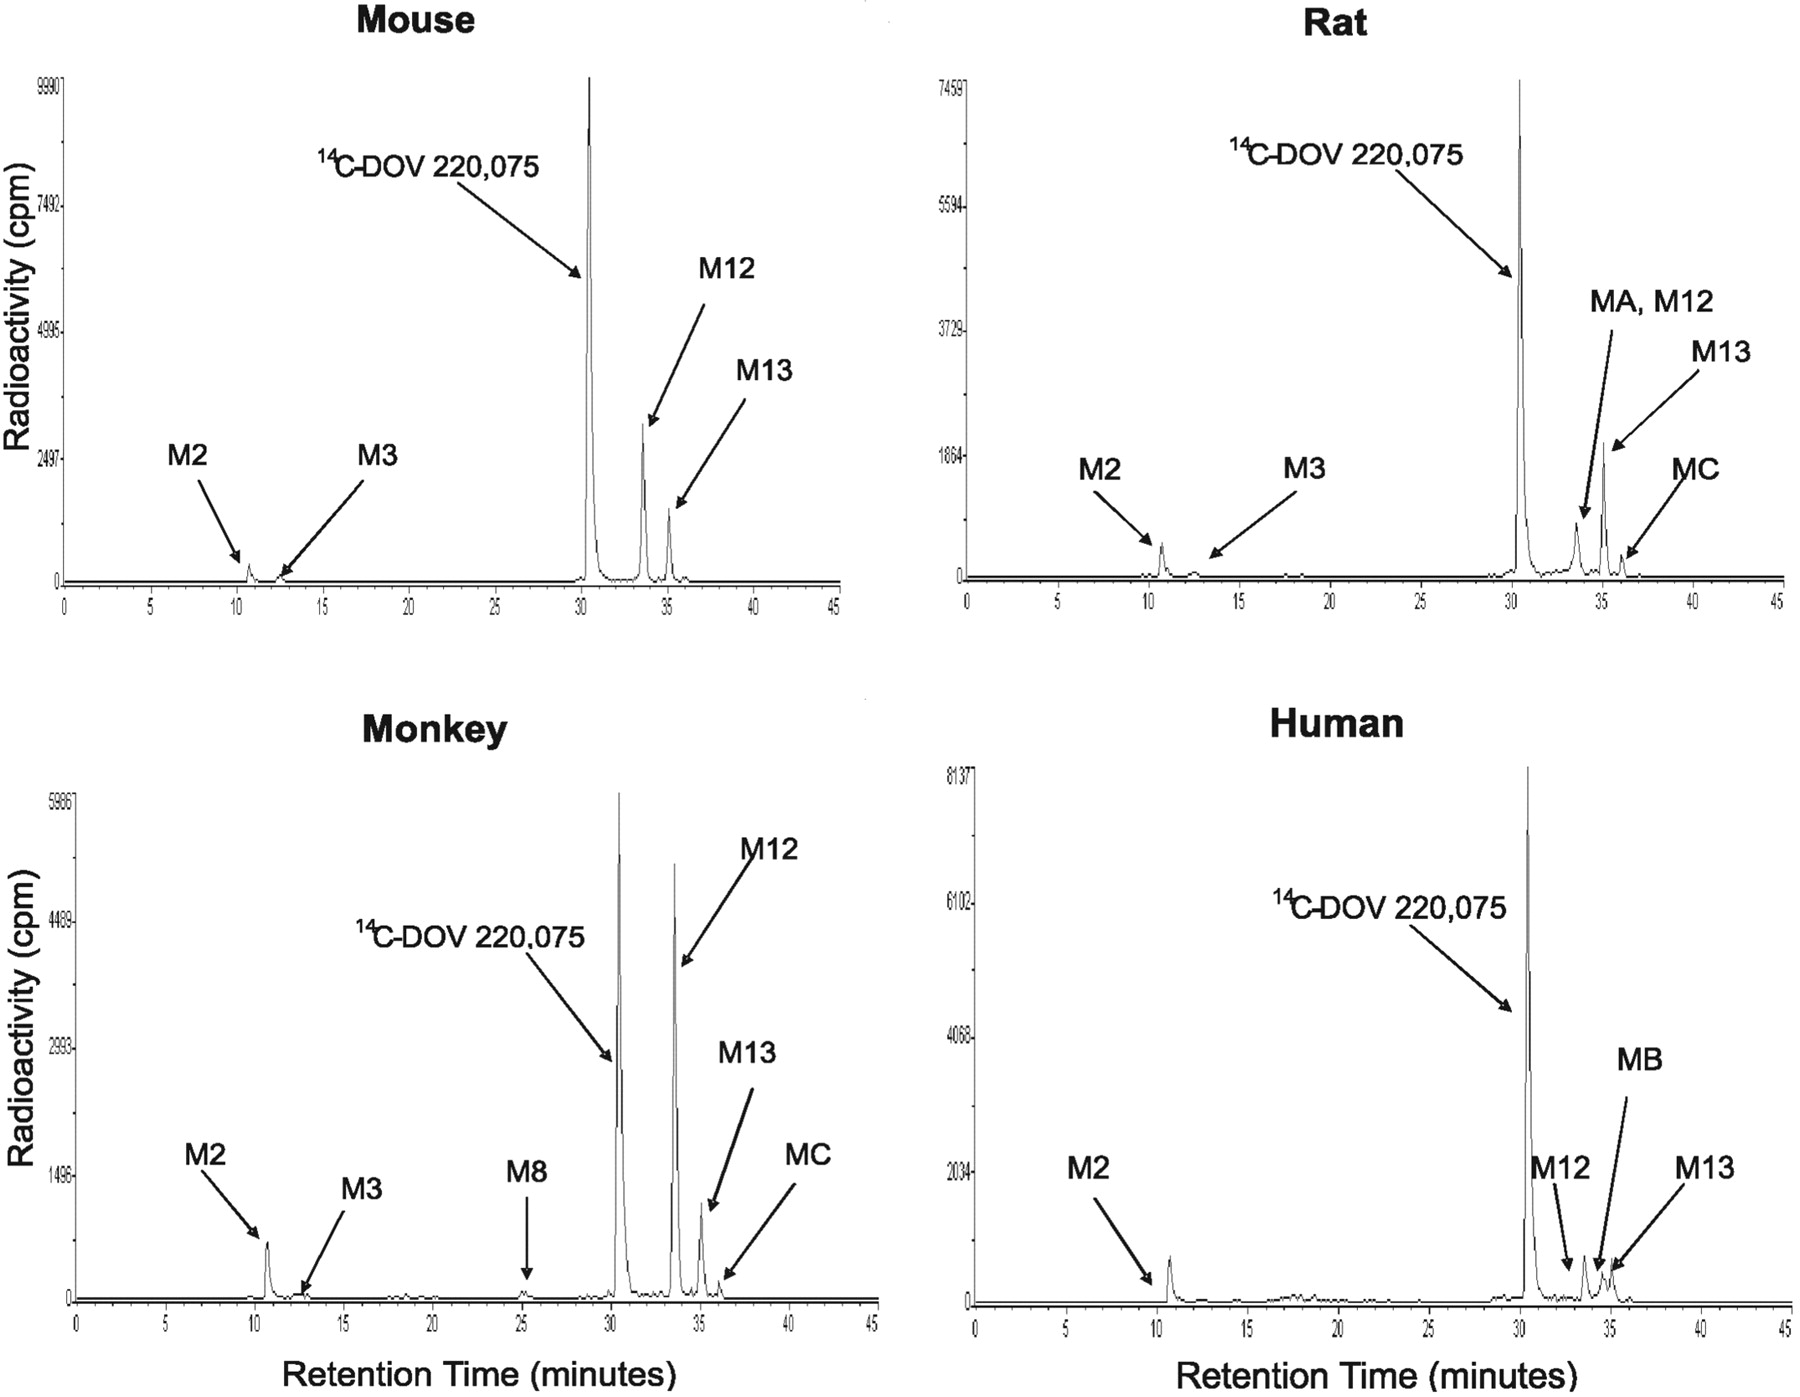 metabolism of a mouse Mouse metabolism for using mouse models, please refer to  the gut microbiota modulates host amino acid and glutathione metabolism in mice the gut microbiota has been proposed as an environmental factor that promotes the progression of metabolic diseases.